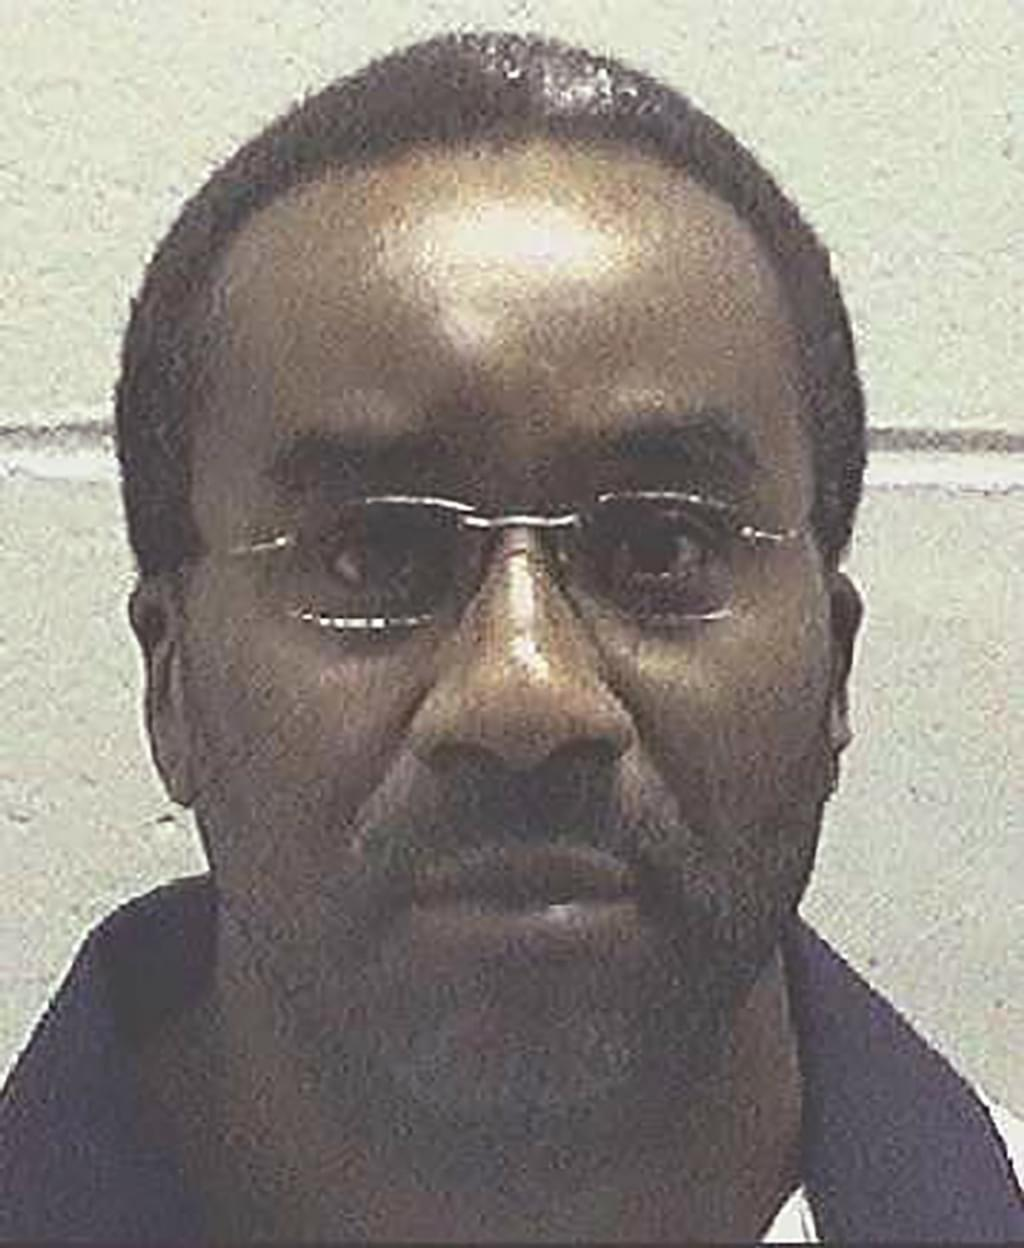 Georgia Prisoner Says He is Not the Shooter, Seeks Stay of Execution to Permit DNA Testing